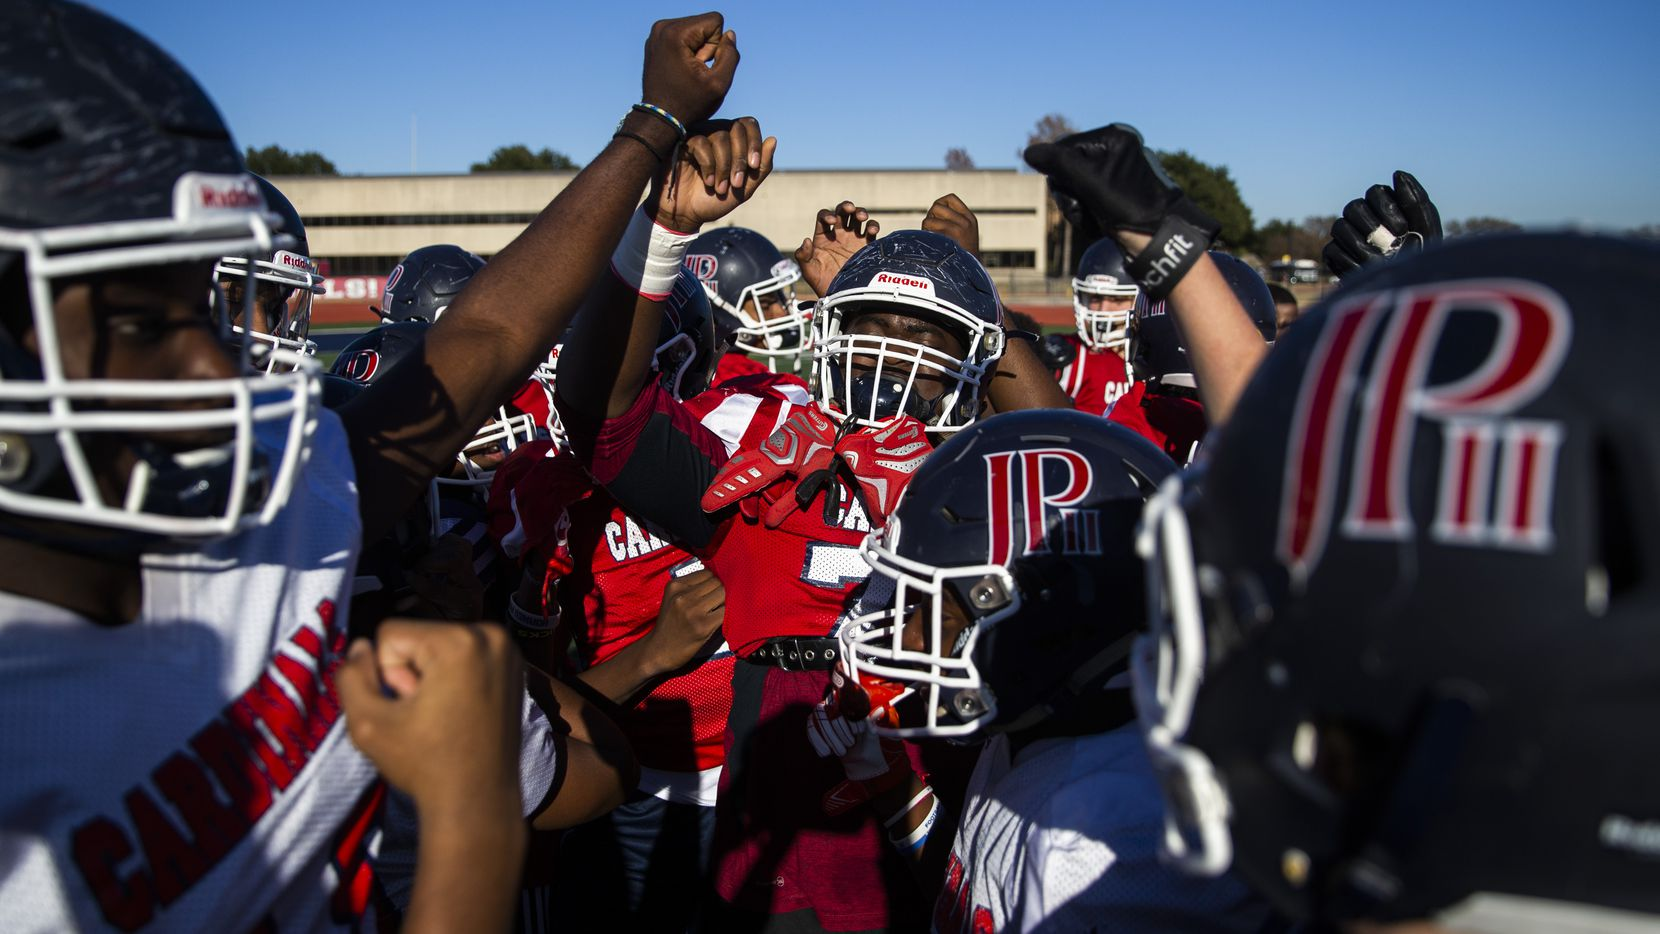 The John Paul II High School football team practices on Tuesday, December 3, 2019 in Plano. They play in the TAPPS Division I state championship game on Friday. (Ashley Landis/The Dallas Morning News)